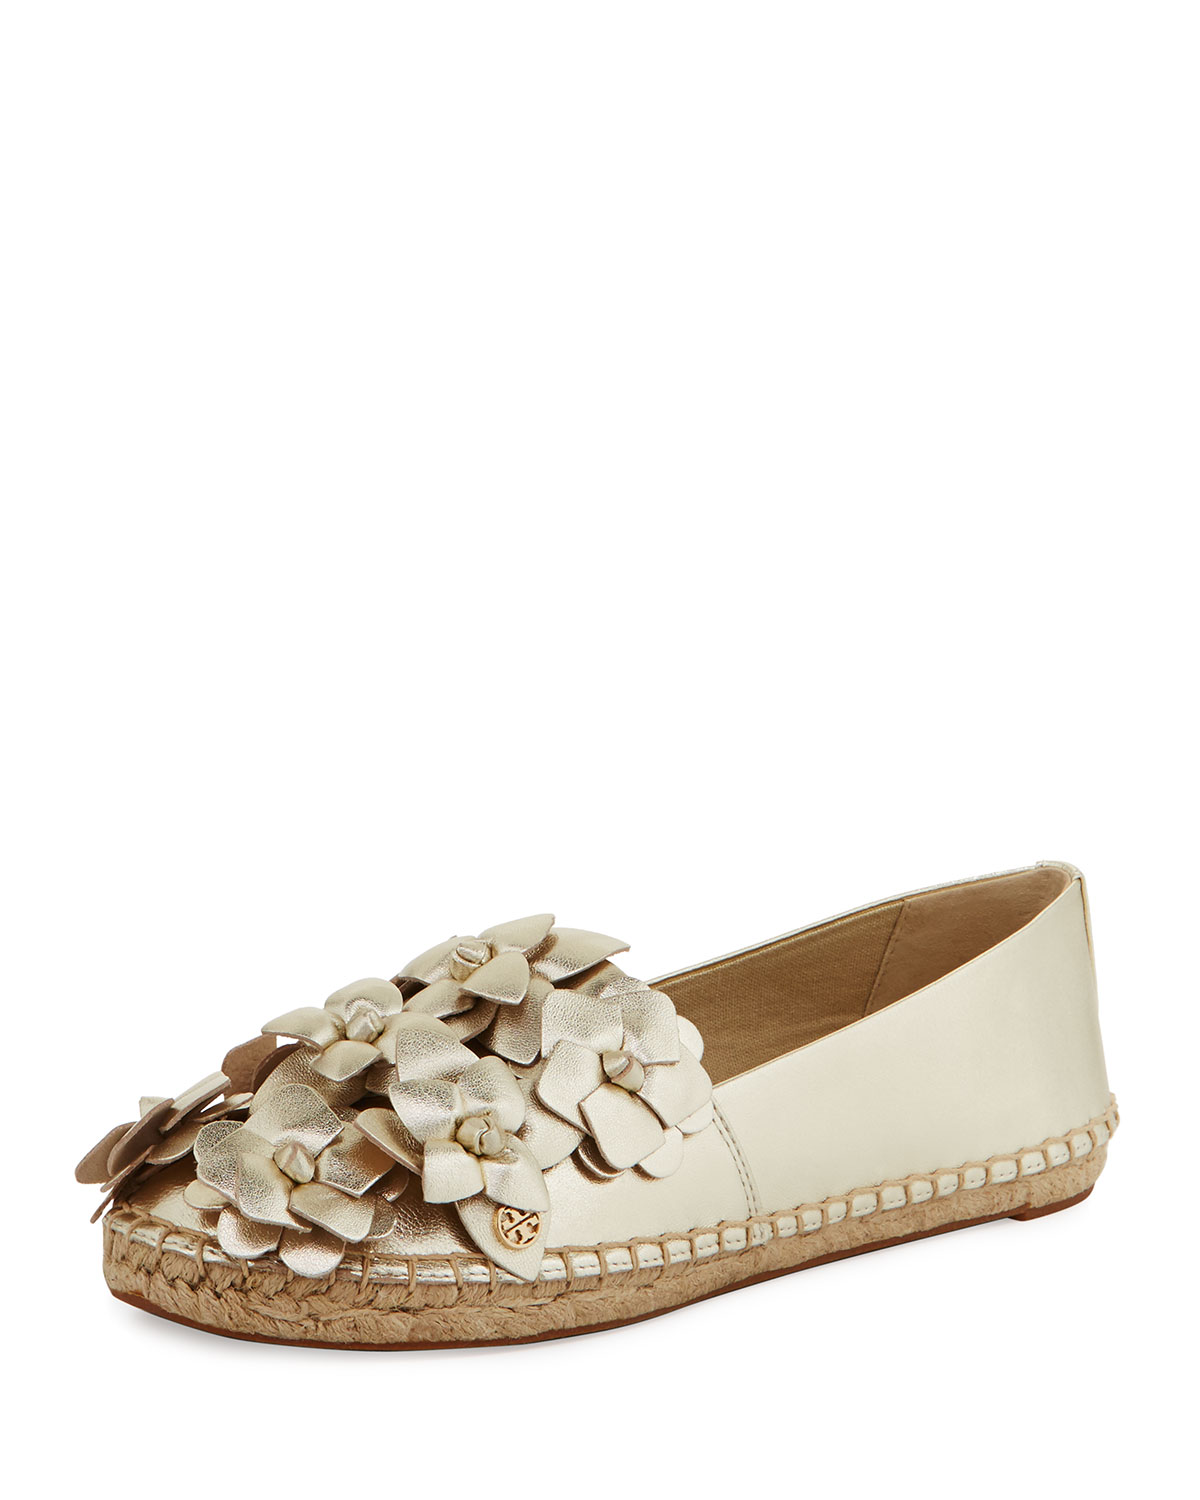 e66278053dbde1 Tory Burch Blossom Leather Espadrille Flat